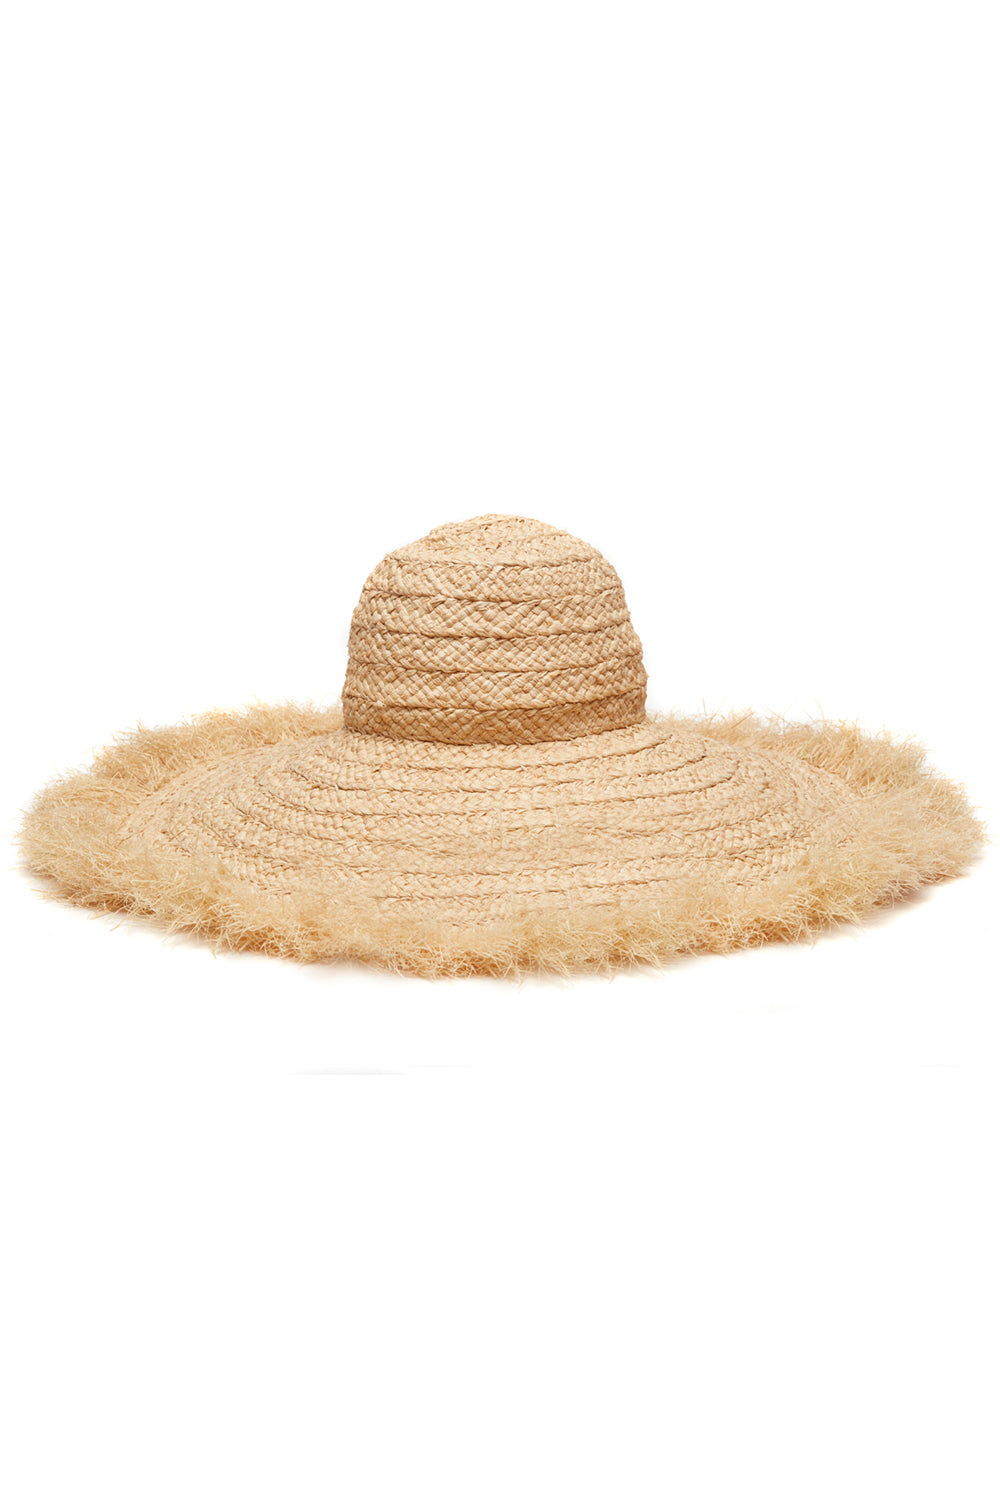 Celine Sunhat in Natural